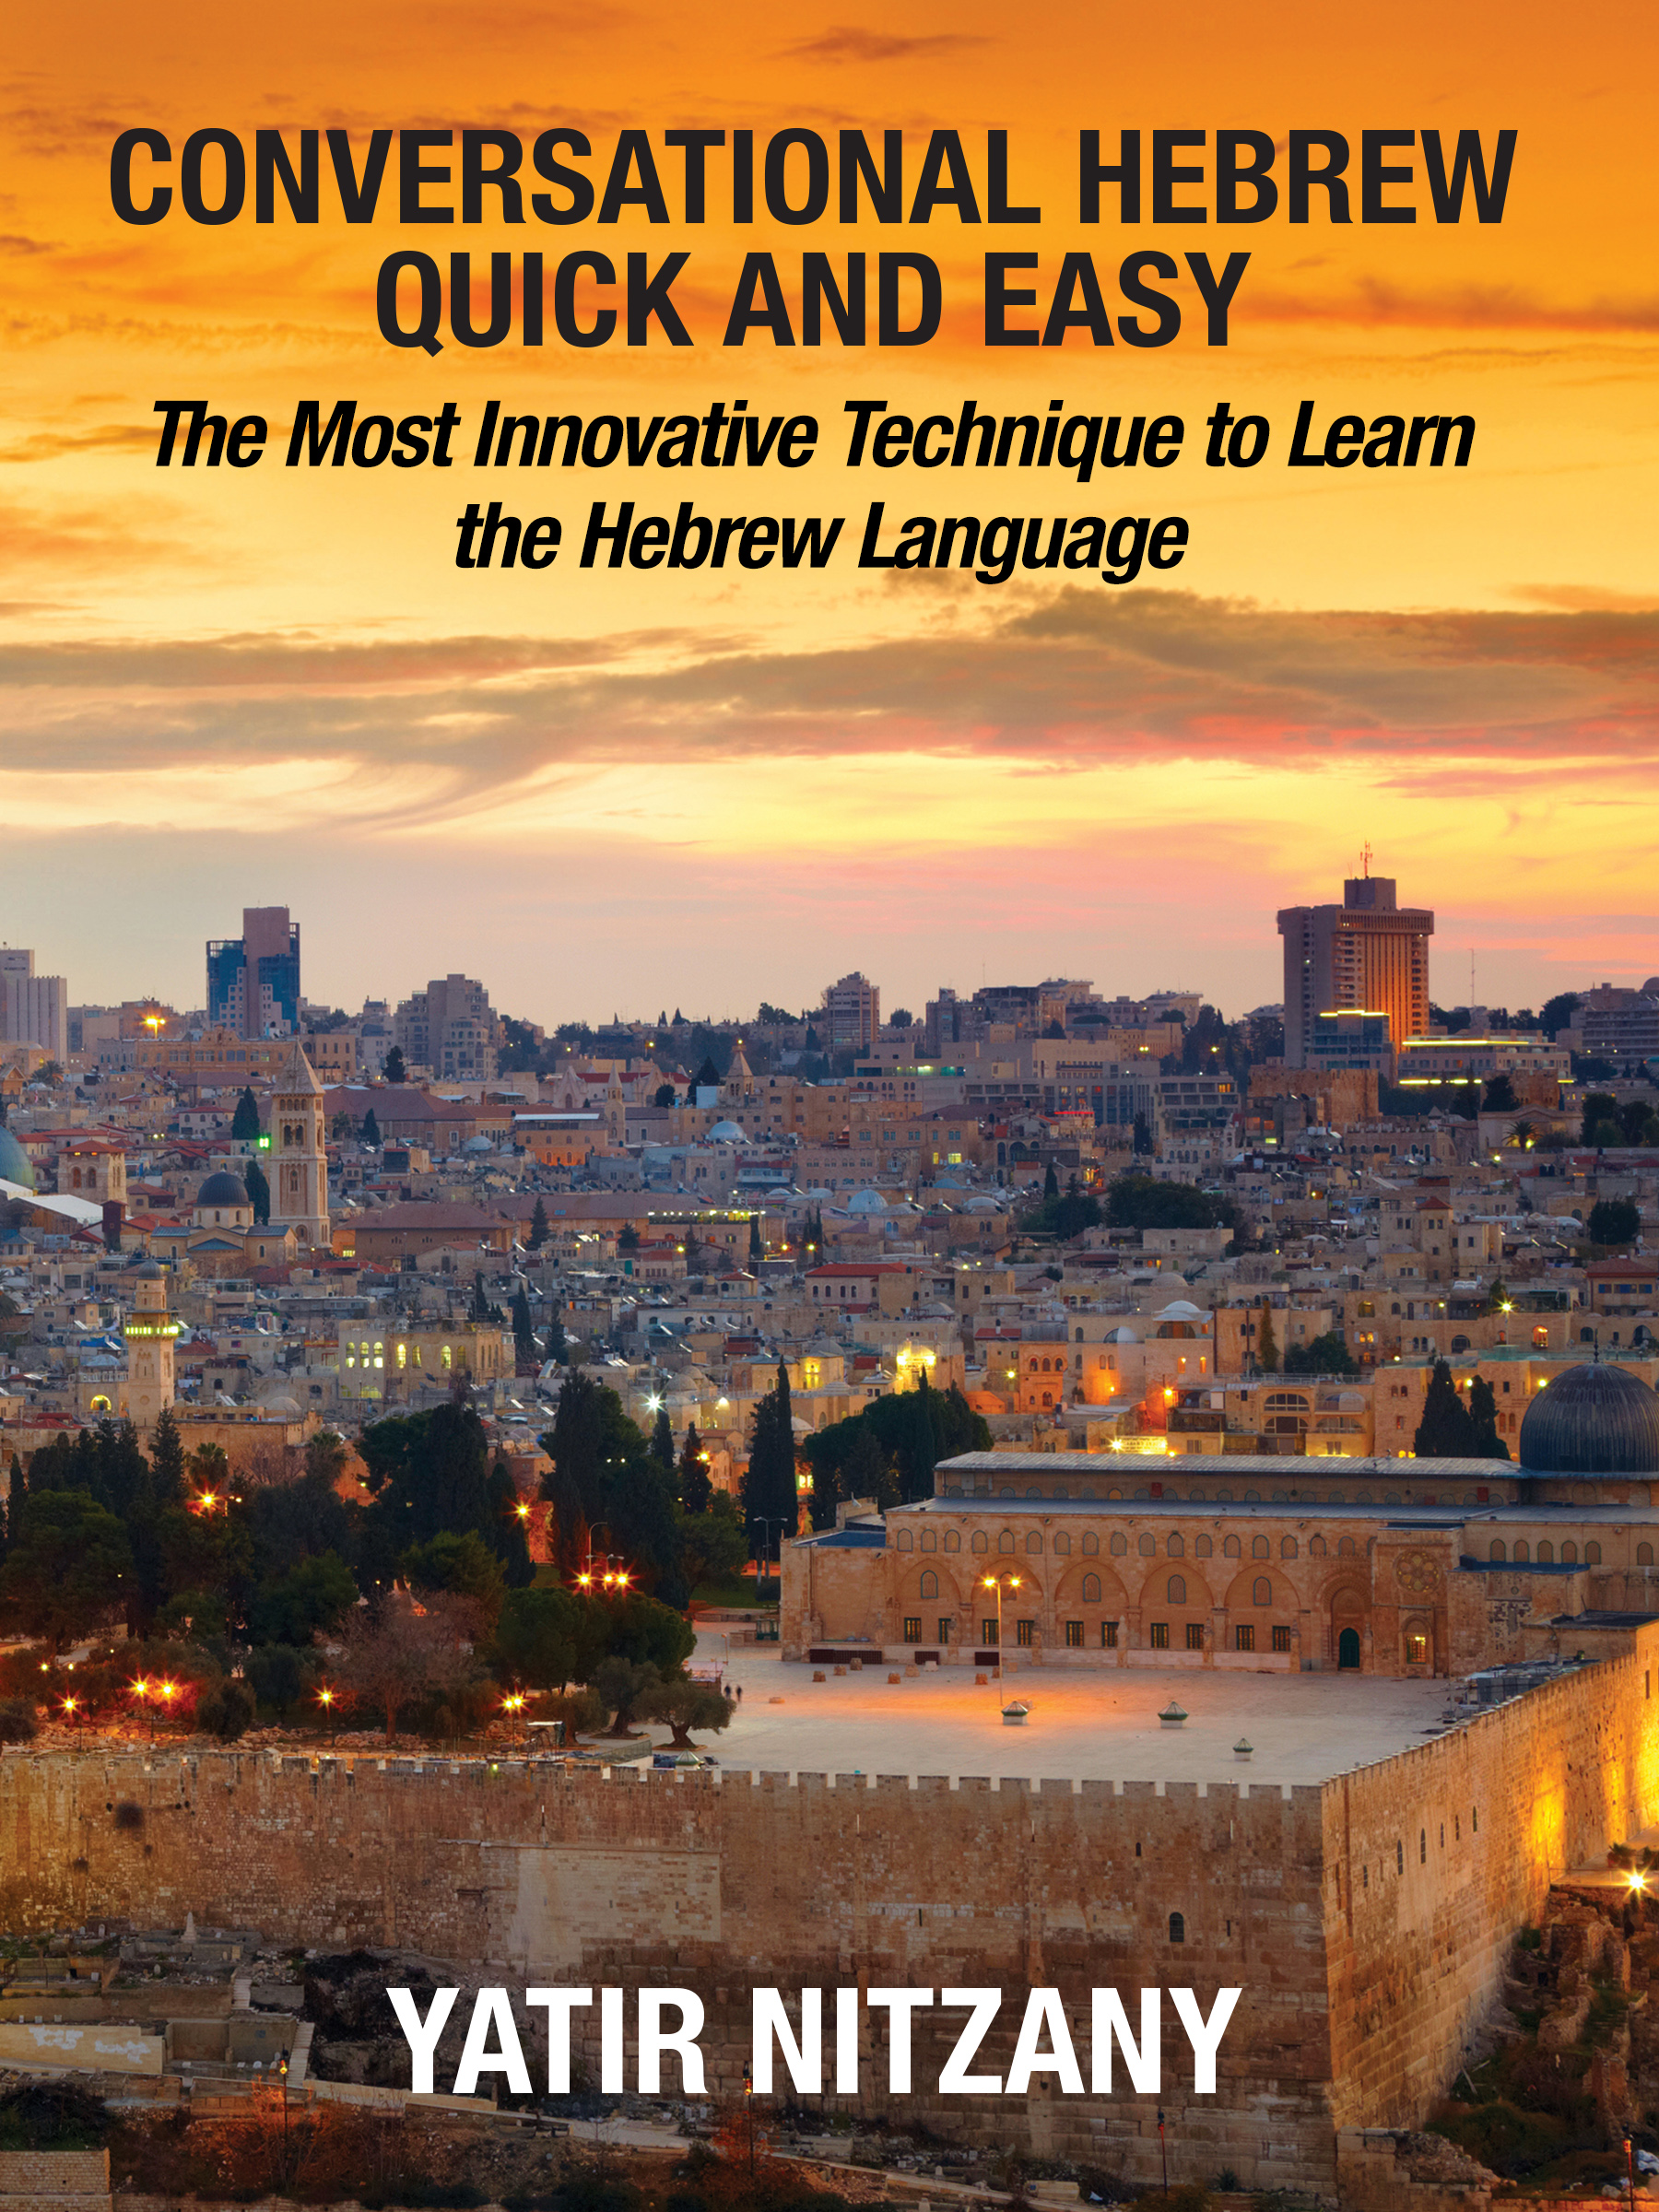 Conversational Hebrew Quick and Easy: The Most Innovative and Revolutionary  Technique to Learn the Hebrew Language , an Ebook by Yatir Nitzany